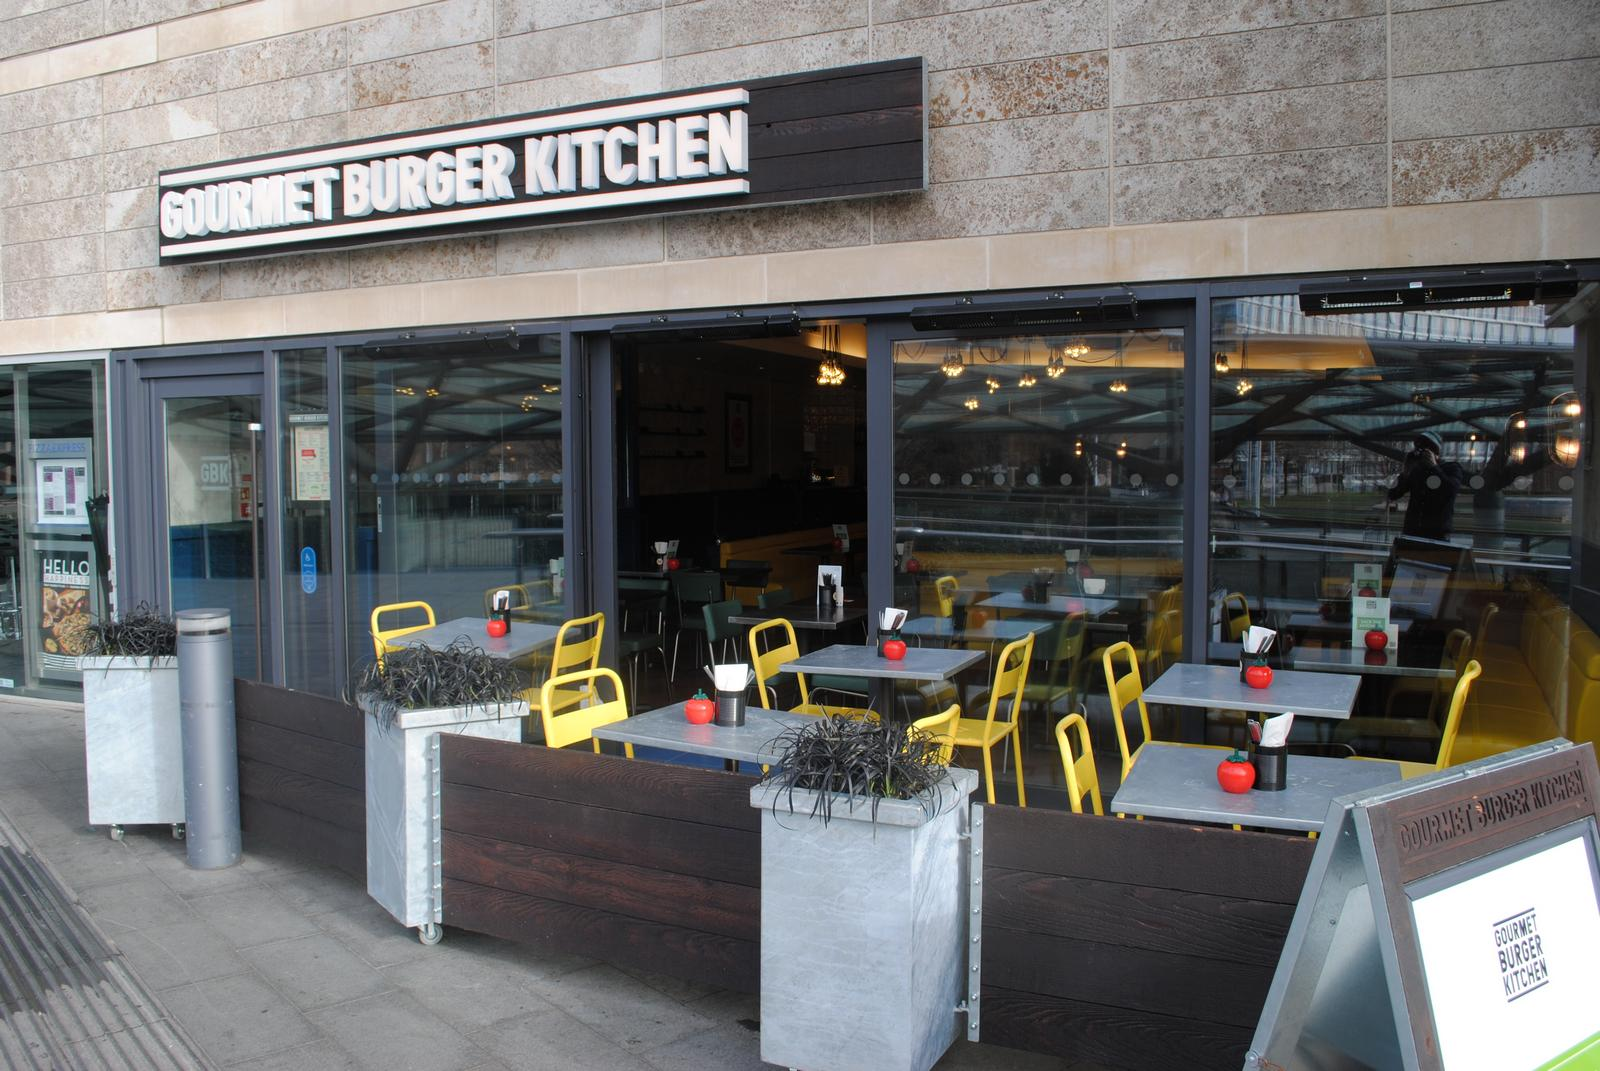 Gourmet Burger Kitchen - Liverpool 9 - Stuart Consultancy Ltd